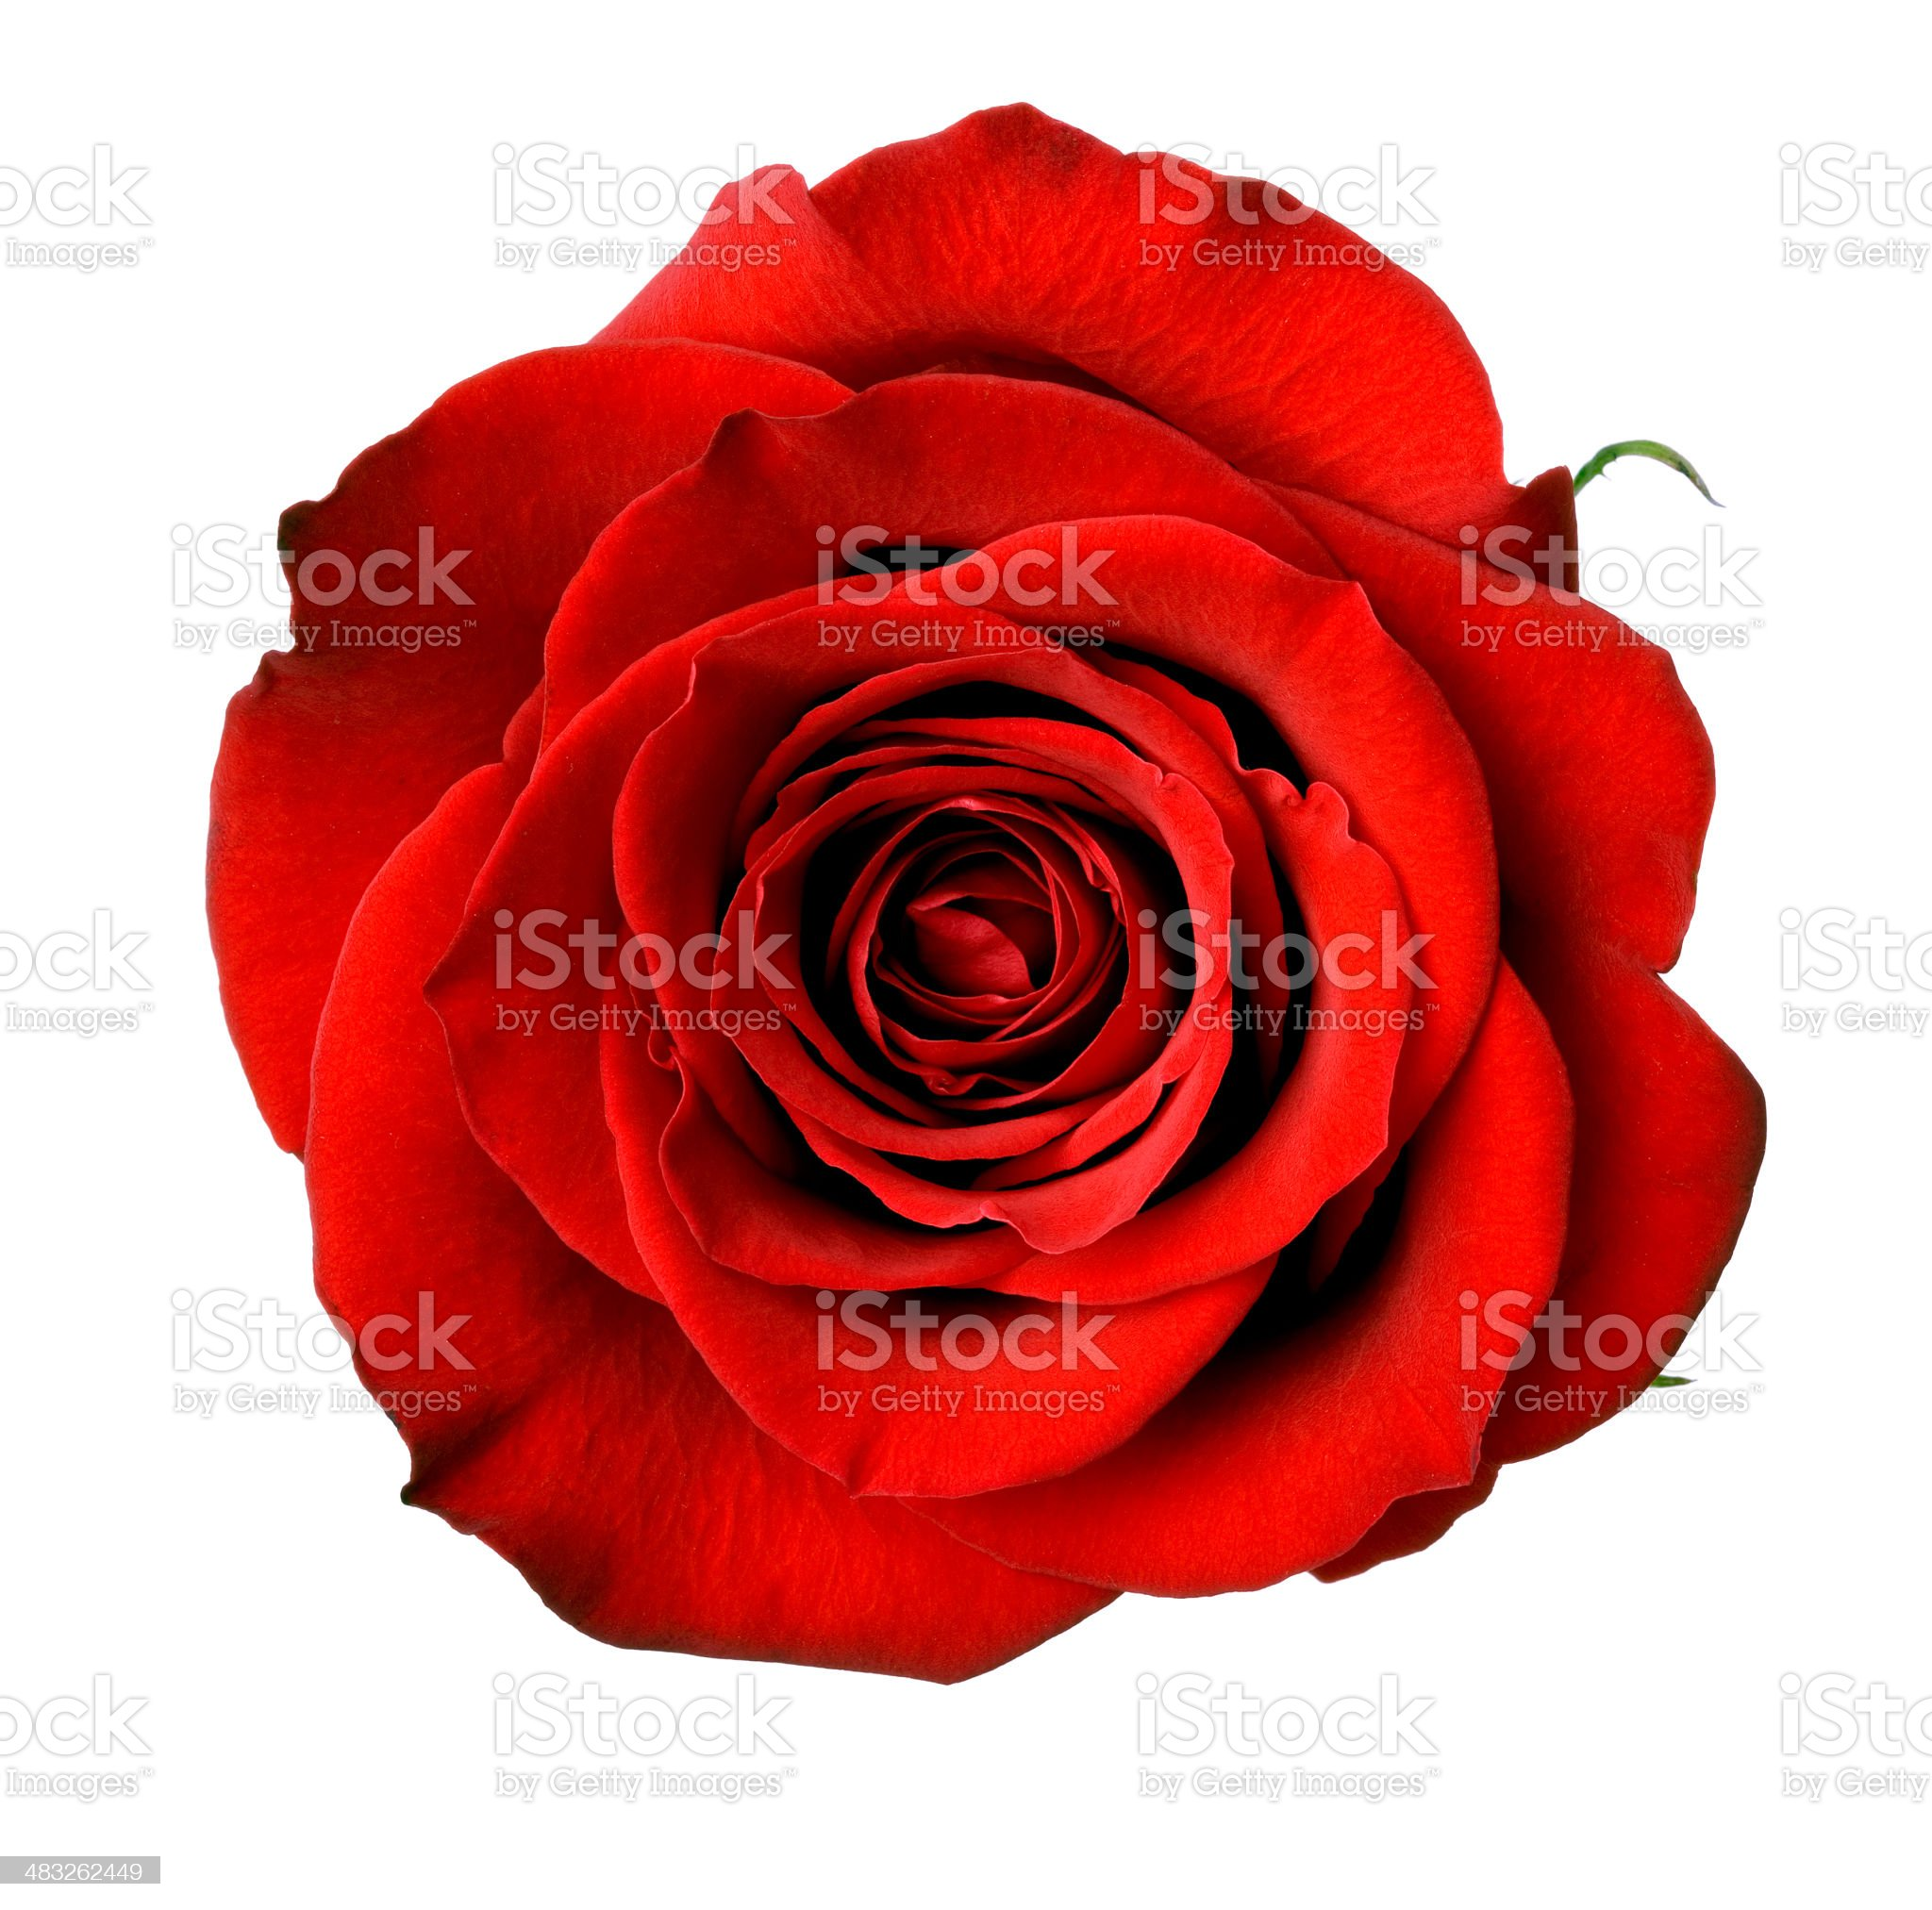 Isolated Dark Red Rose royalty-free stock photo